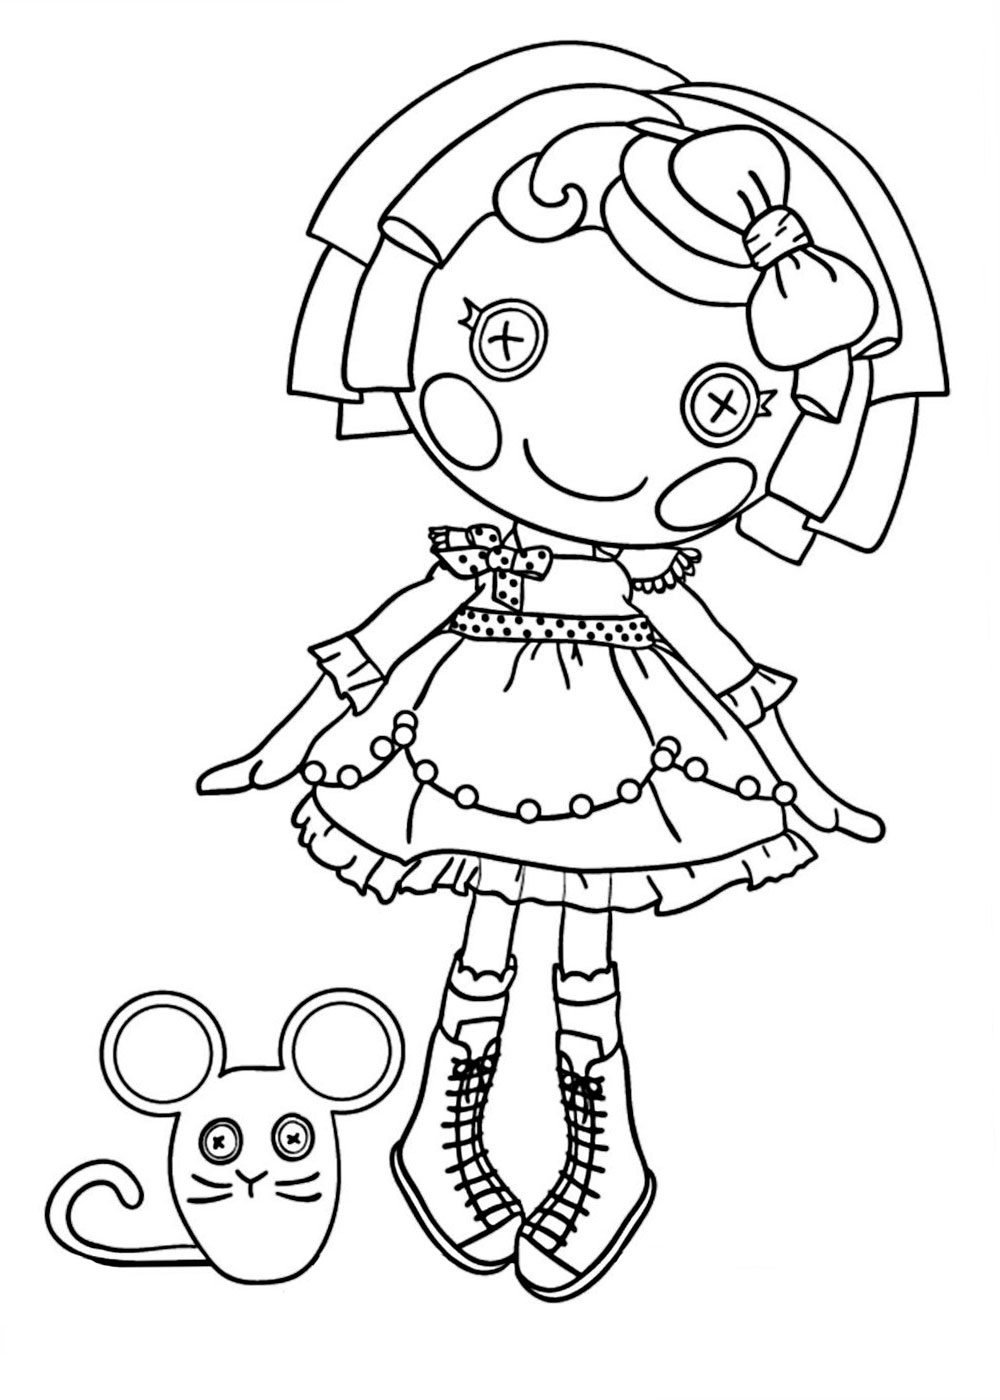 lalaloopsy pictures how to draw lalaloopsy youtube pictures lalaloopsy